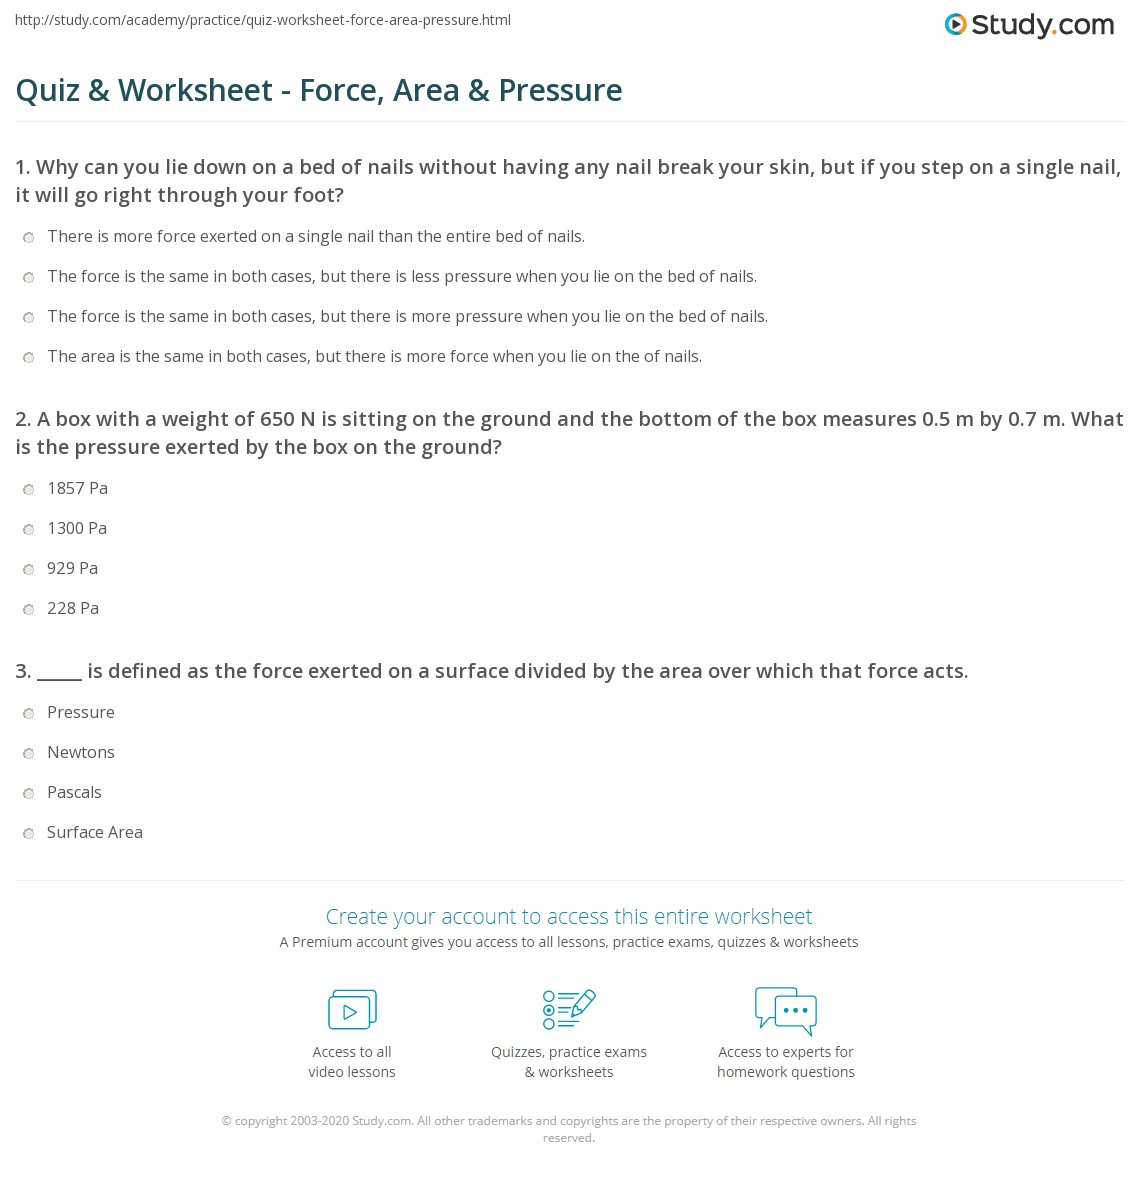 Quiz & Worksheet - Force, Area & Pressure | Study.com